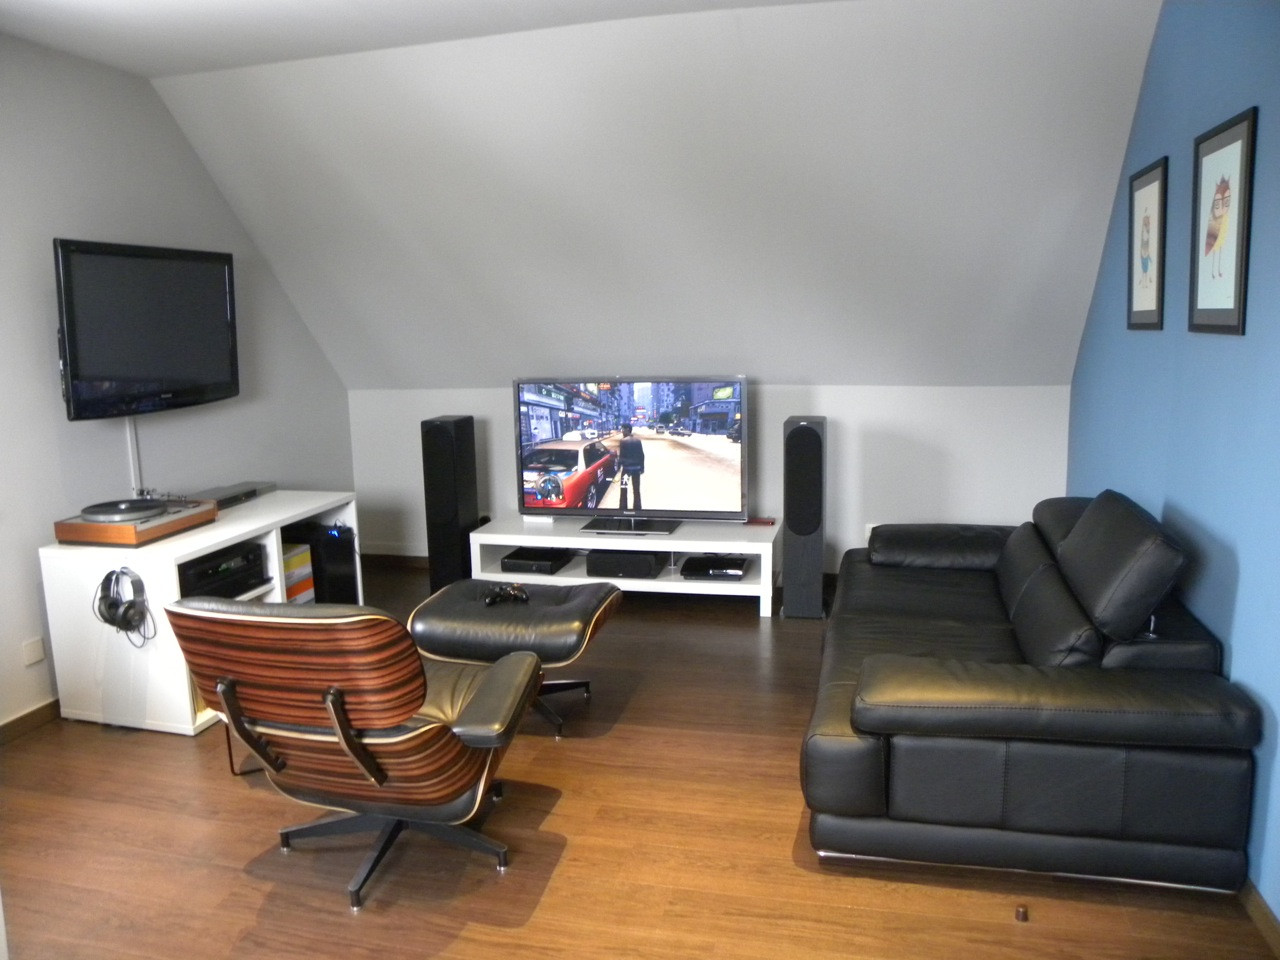 Best ideas about Video Game Room Furniture . Save or Pin 15 Awesome Video Game Room Design Ideas You Must See Now.